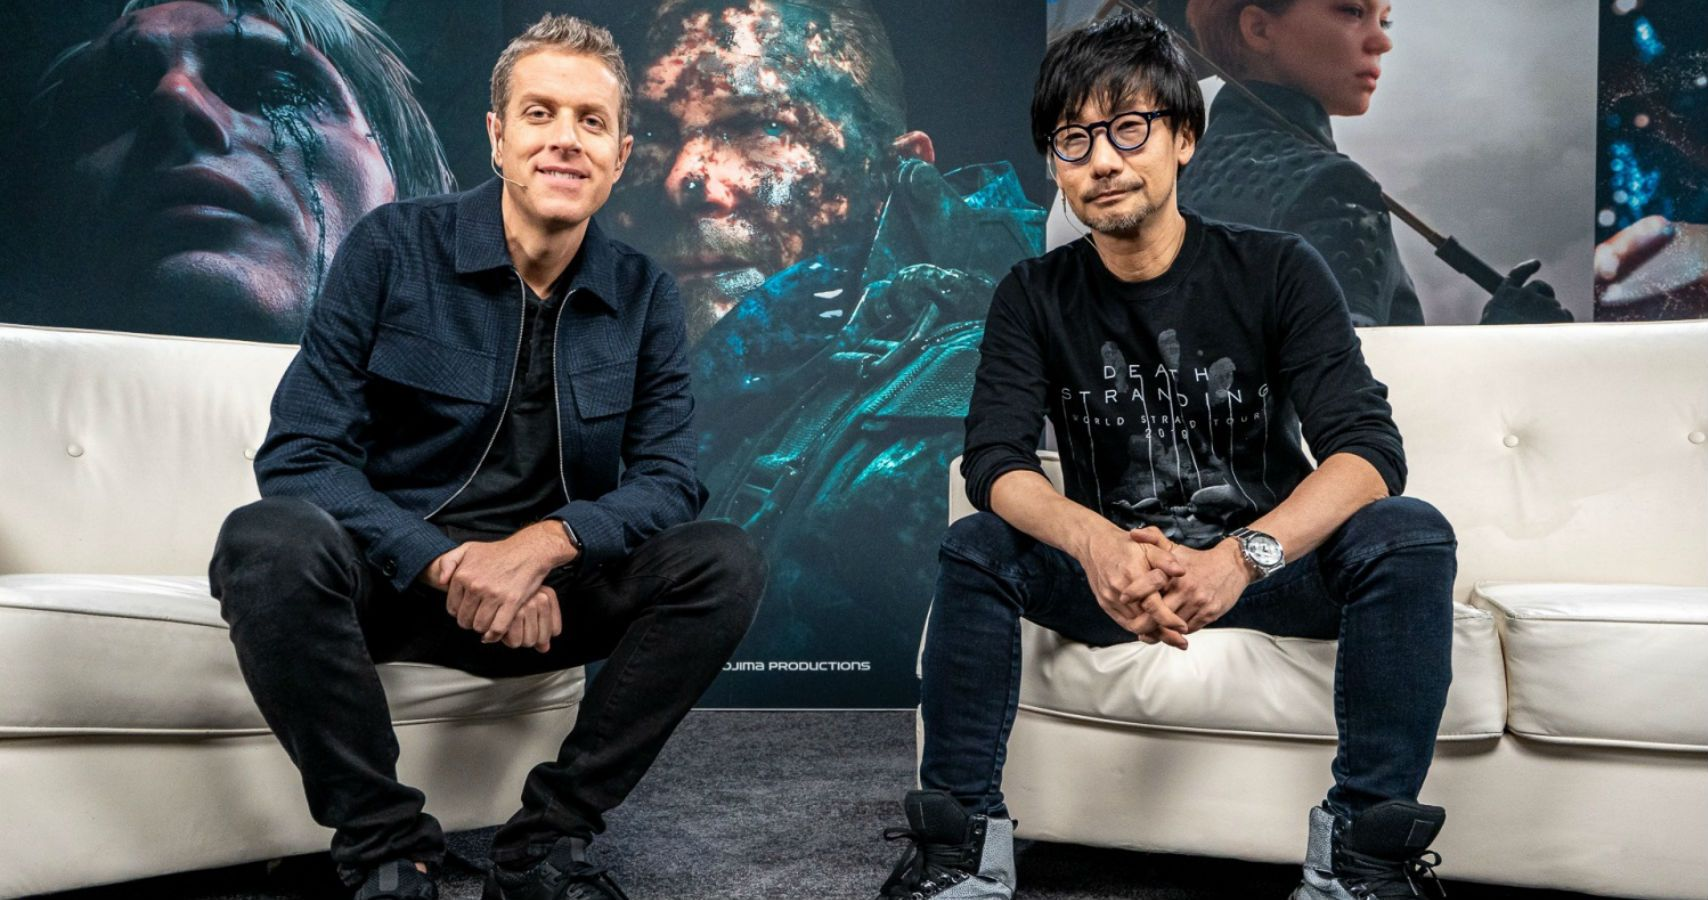 """Kojima Productions Teases """"Exciting Updates"""" On Its Social Channels Tomorrow"""